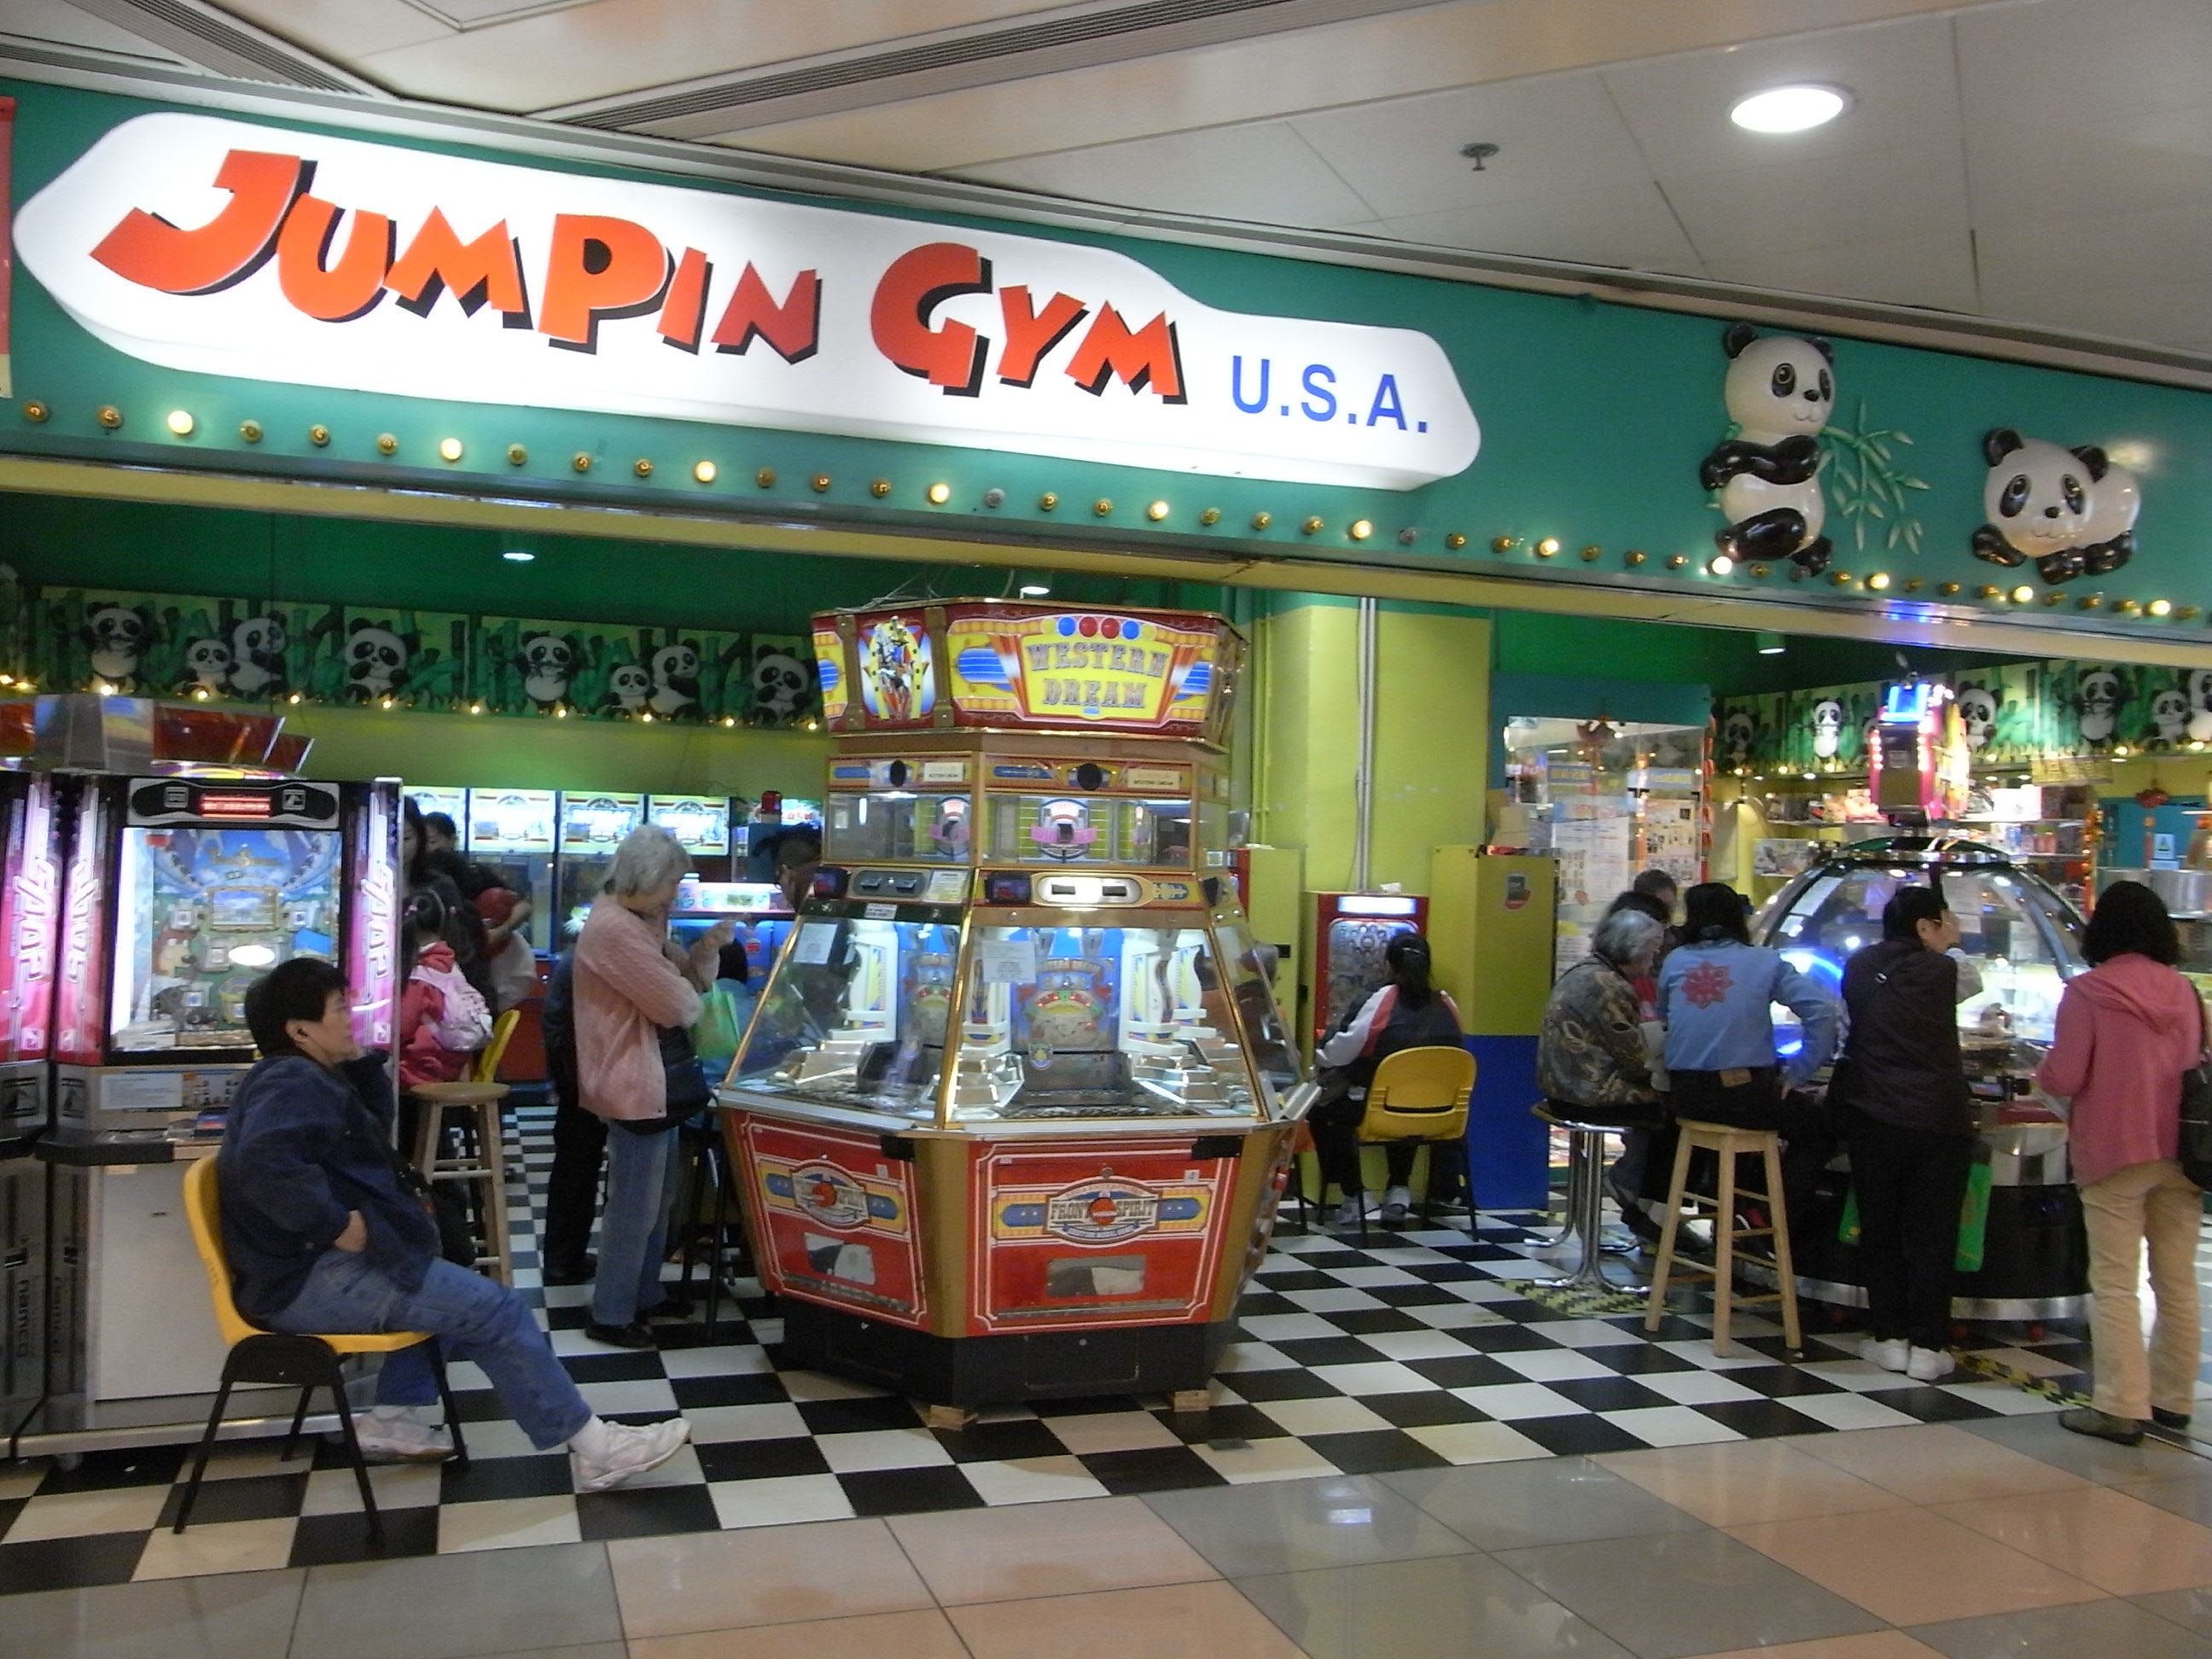 Jumpin Gym USA Hong Kong Location Attractions Map,Location Attractions Map of Jumpin Gym USA Hong Kong,Jumpin Gym USA Hong Kong accommodation destinations hotels map reviews photos pictures